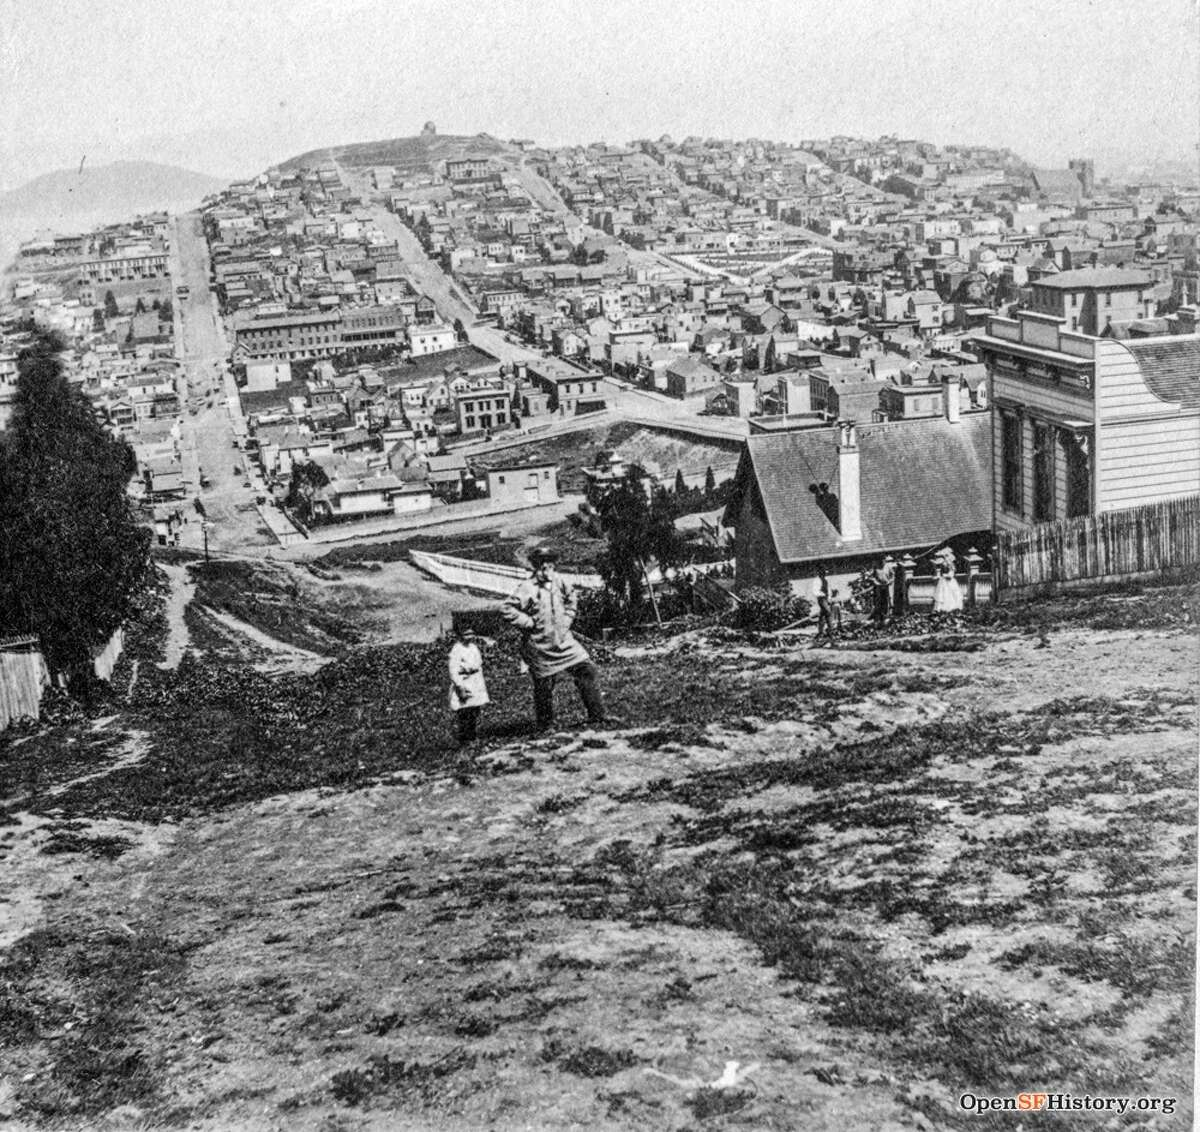 Lombard Street near Leavenworth - the future site of crooked block. Houses, streets, and undeveloped area. Man and child standing in foreground. Angel Island in the distance. Kilburn Brothers, Littleton, N.H. Courtesy of OpenSFHistory.org.